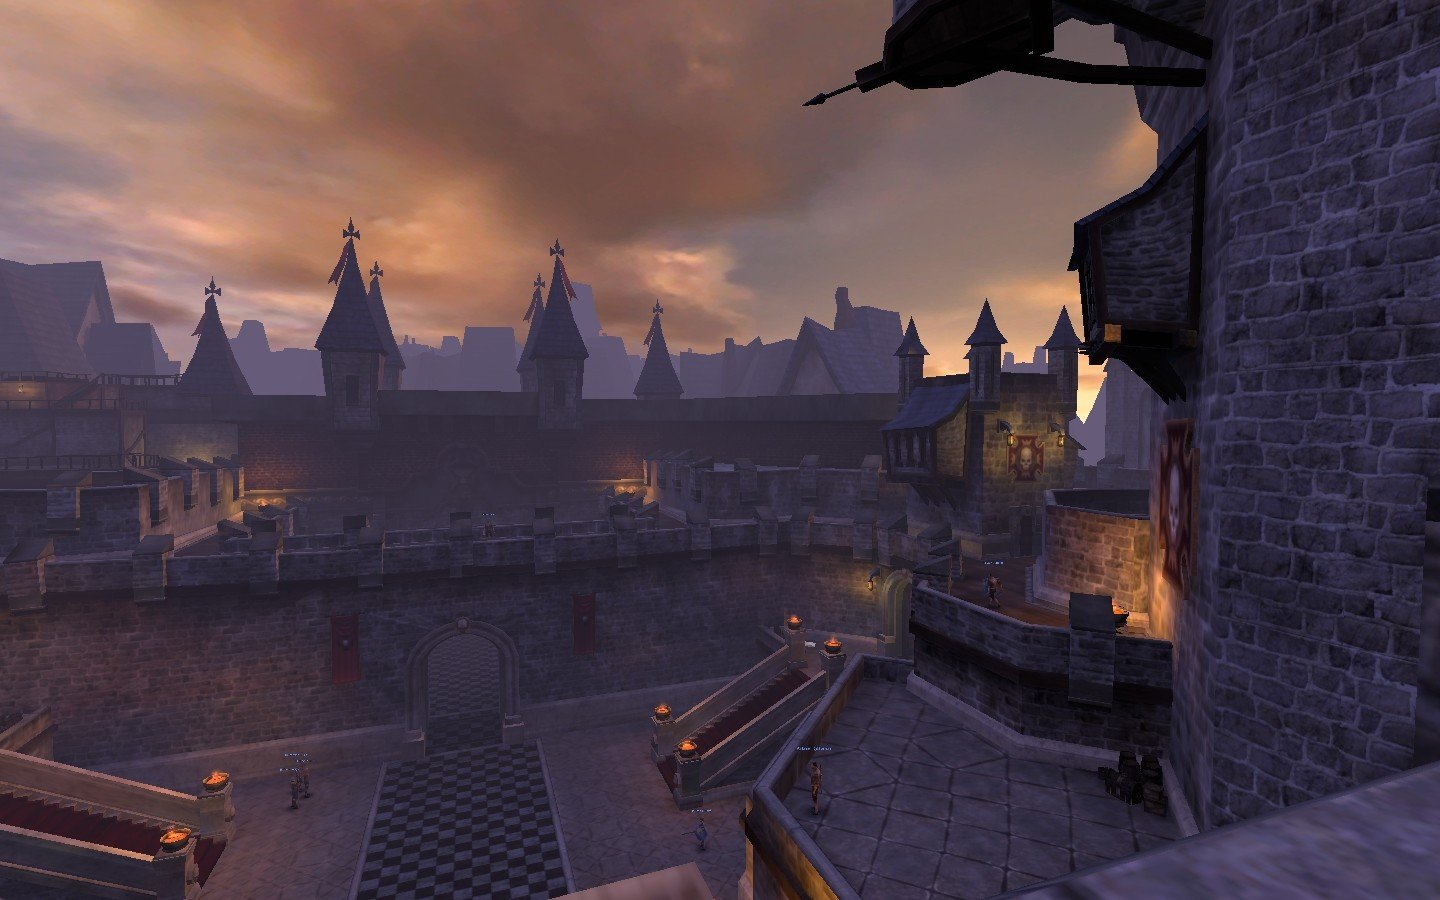 Warhammer Online: Age of Reckoning - The view from the top of the stairs of the Imperial palace in Altdorf